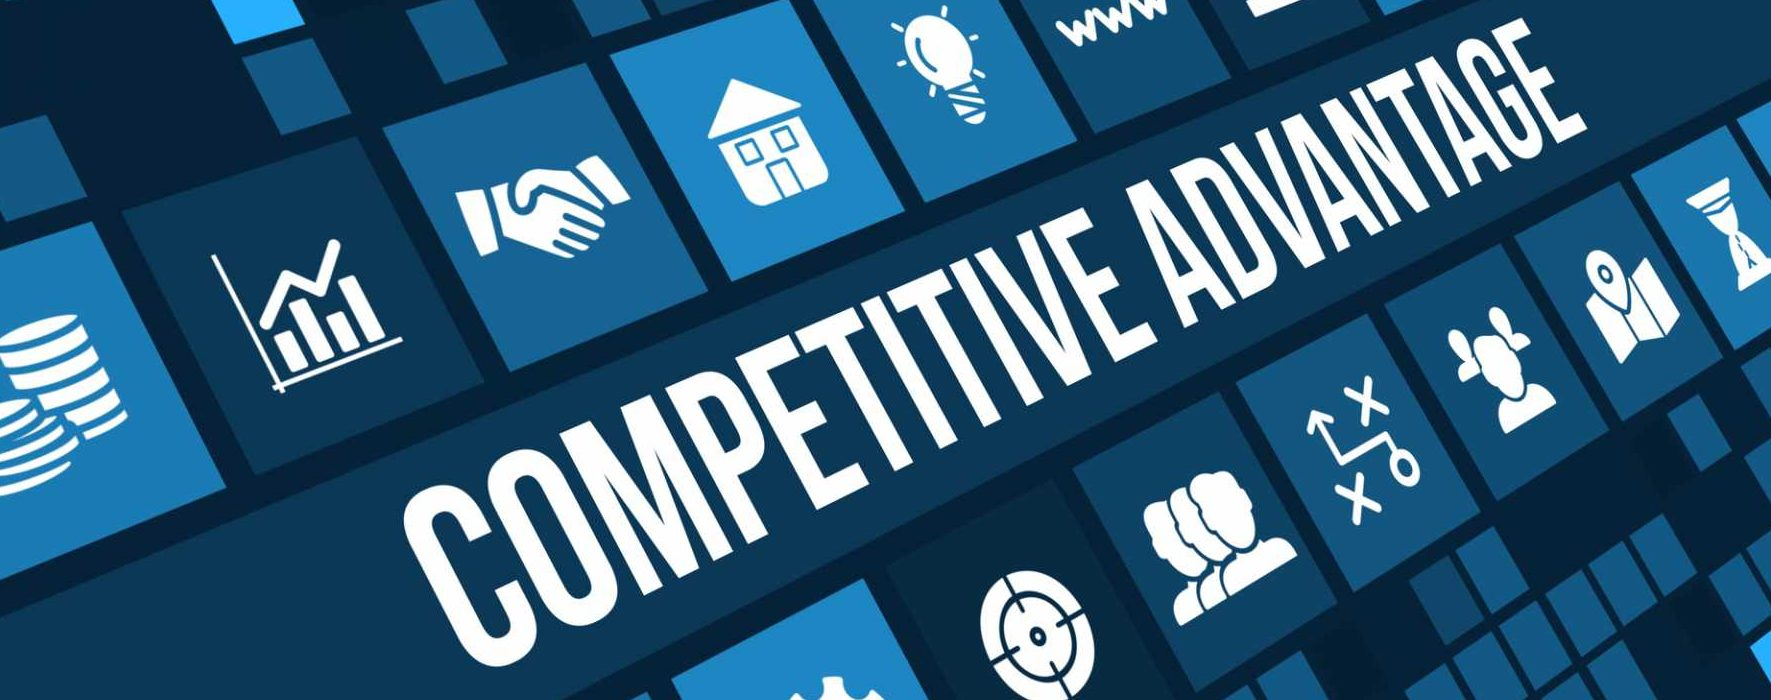 Competitive advantage concept image with business icons and copyspace – image courtesy of Depositphotos.